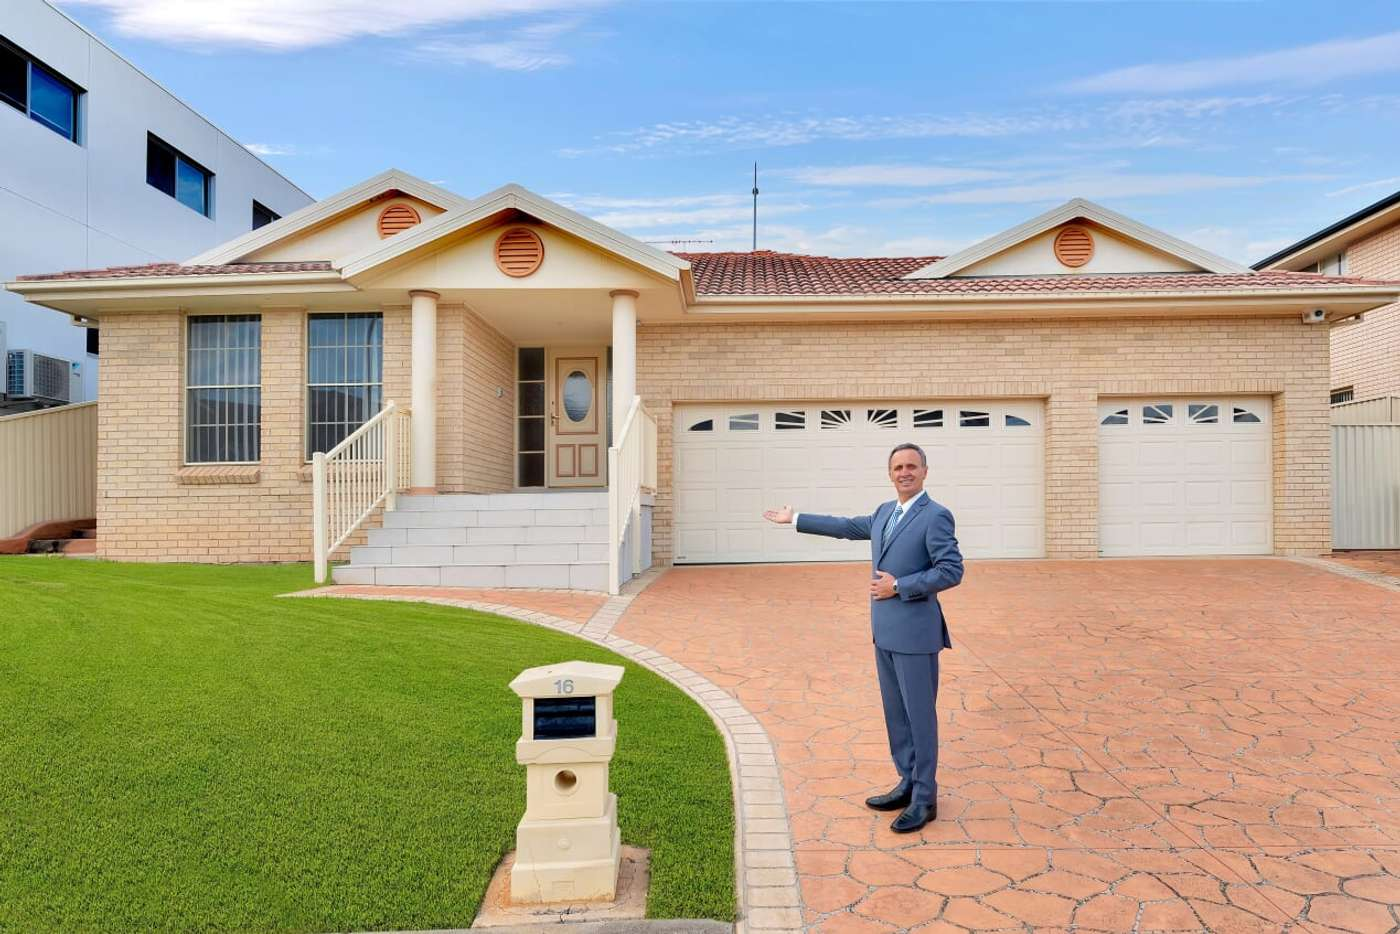 Main view of Homely house listing, 16 Kiernan Crescent, Abbotsbury NSW 2176